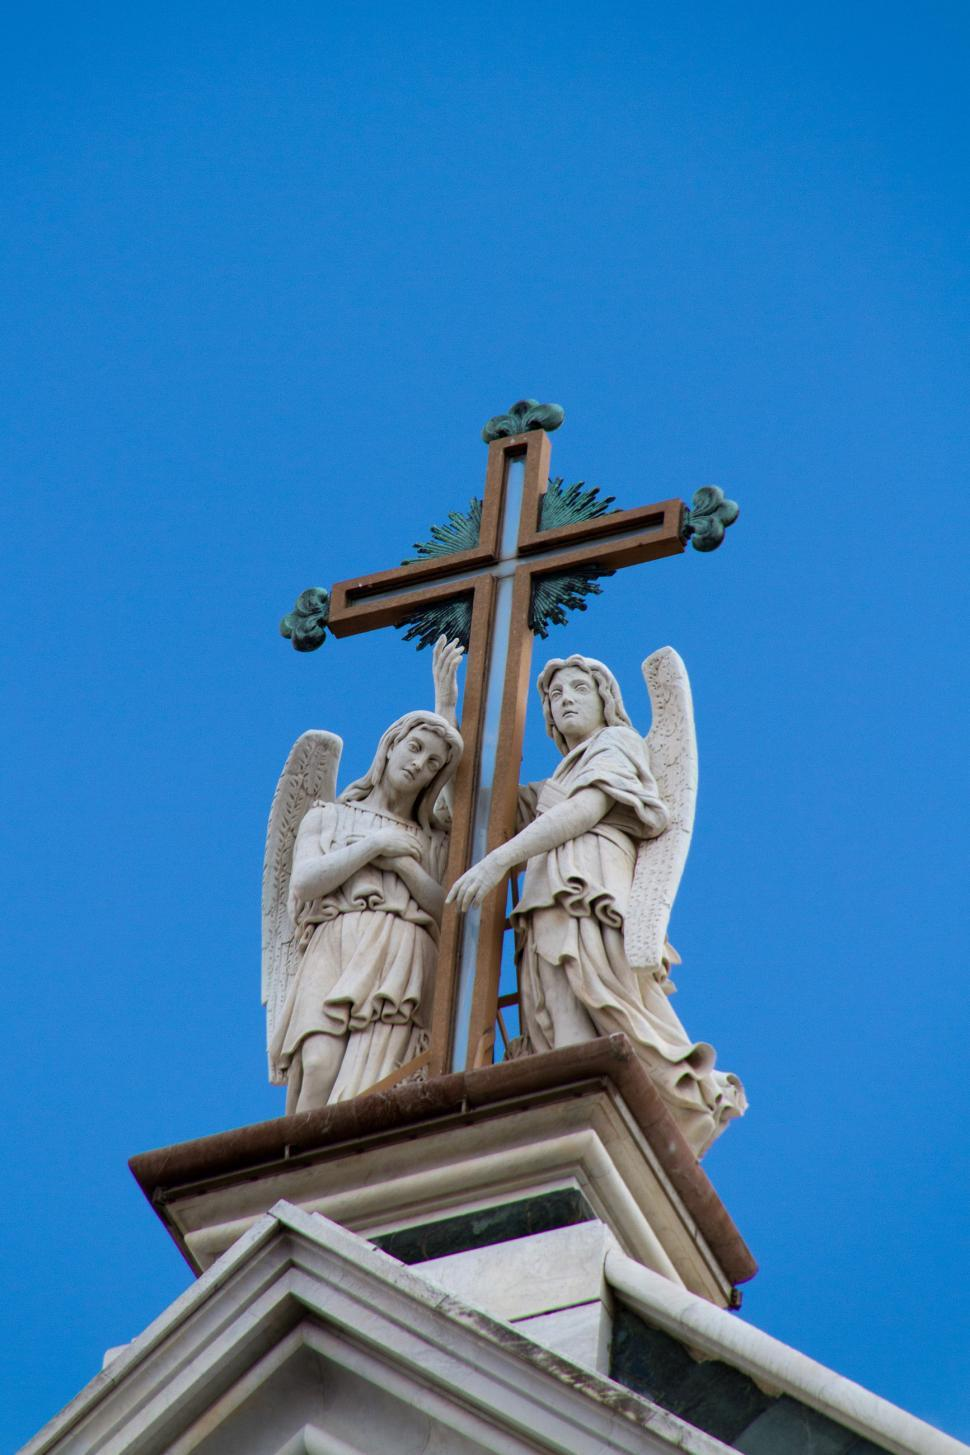 Download Free Stock HD Photo of  Statues on top of Church Online